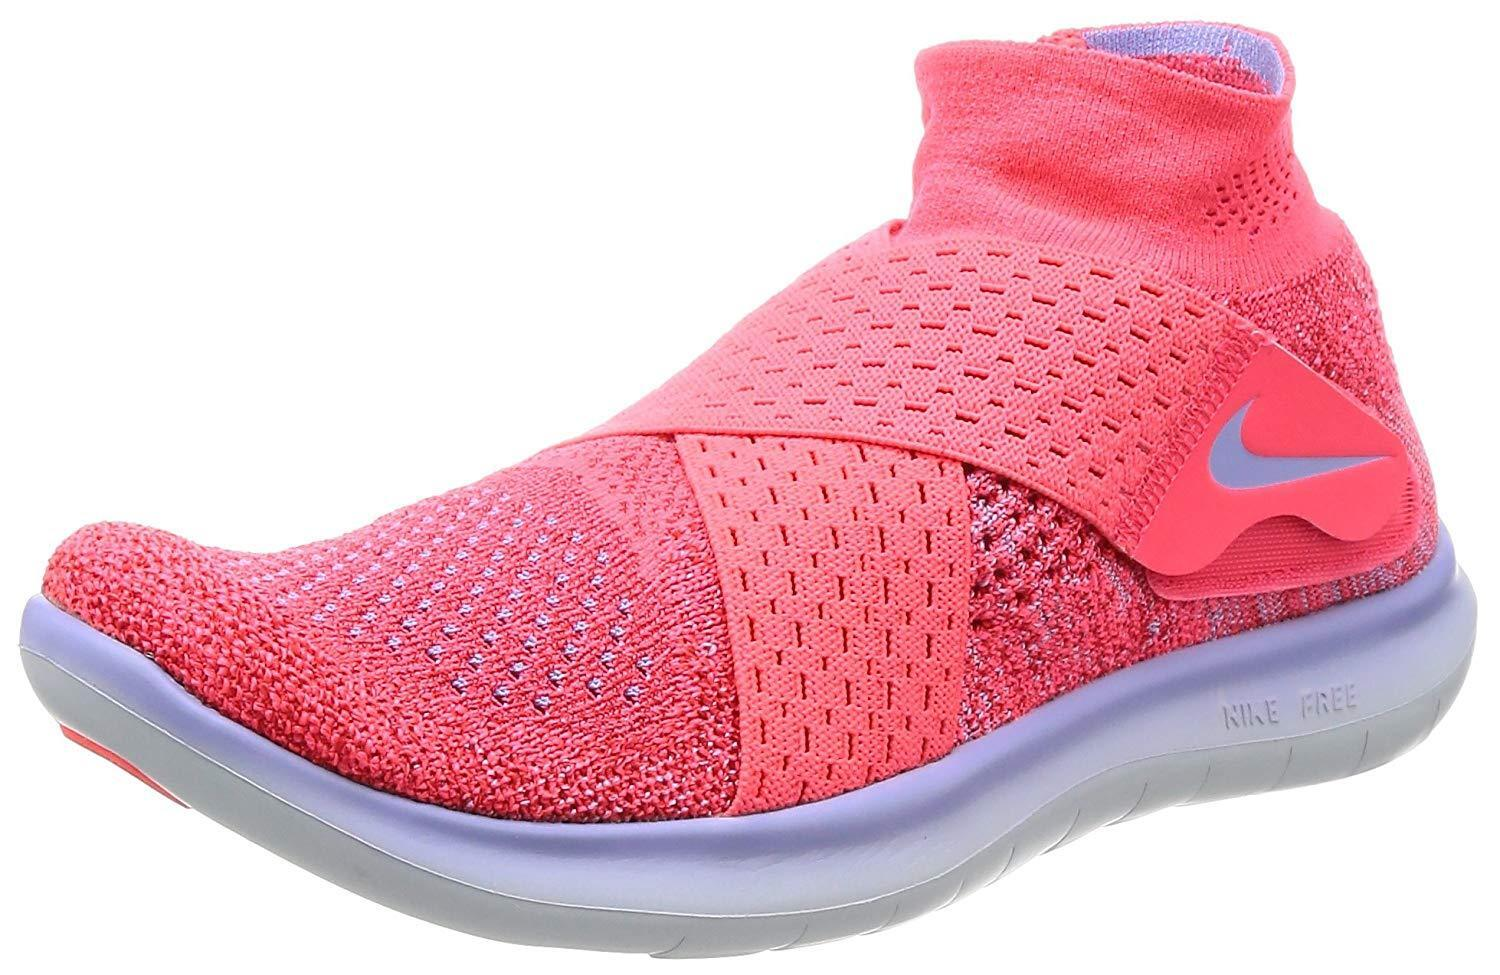 NIKE Women's Free RN Motion FK 2017 Running shoes - Size 8 (SOLAR RED blueE) 88084